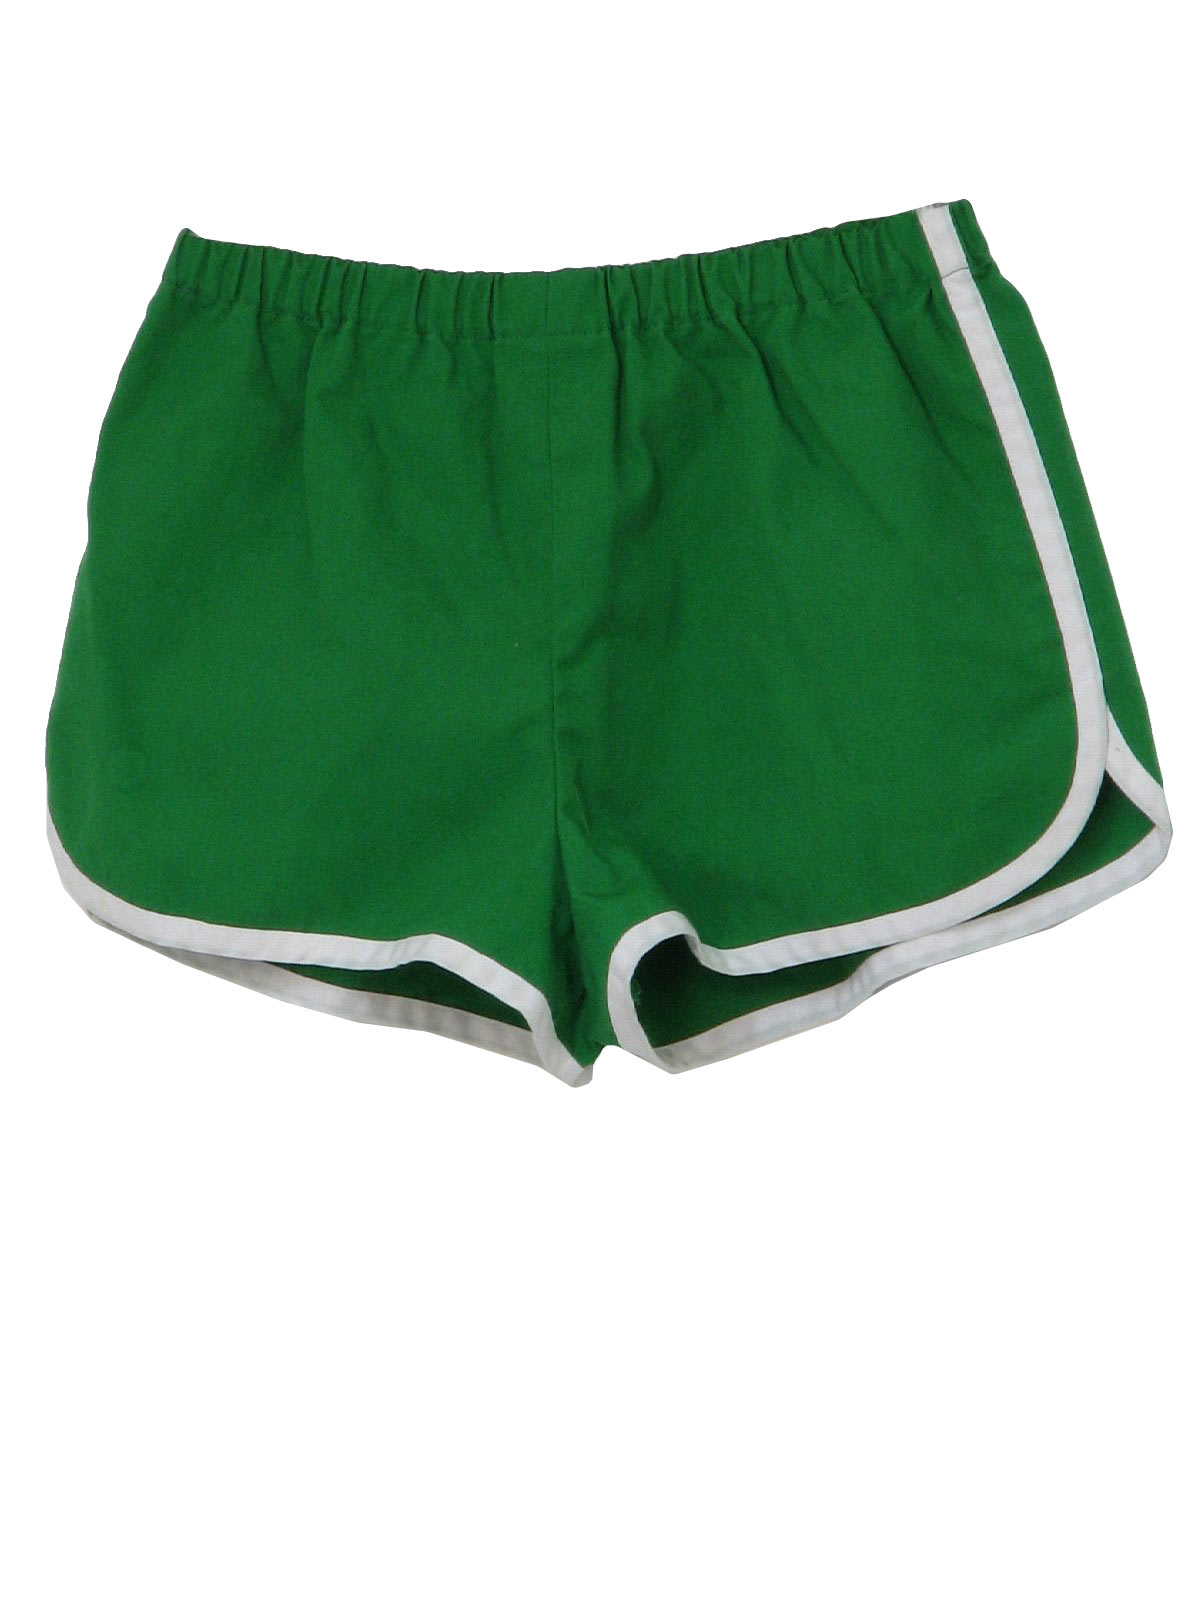 Retro Seventies Shorts 70s Missing Label Mens green and